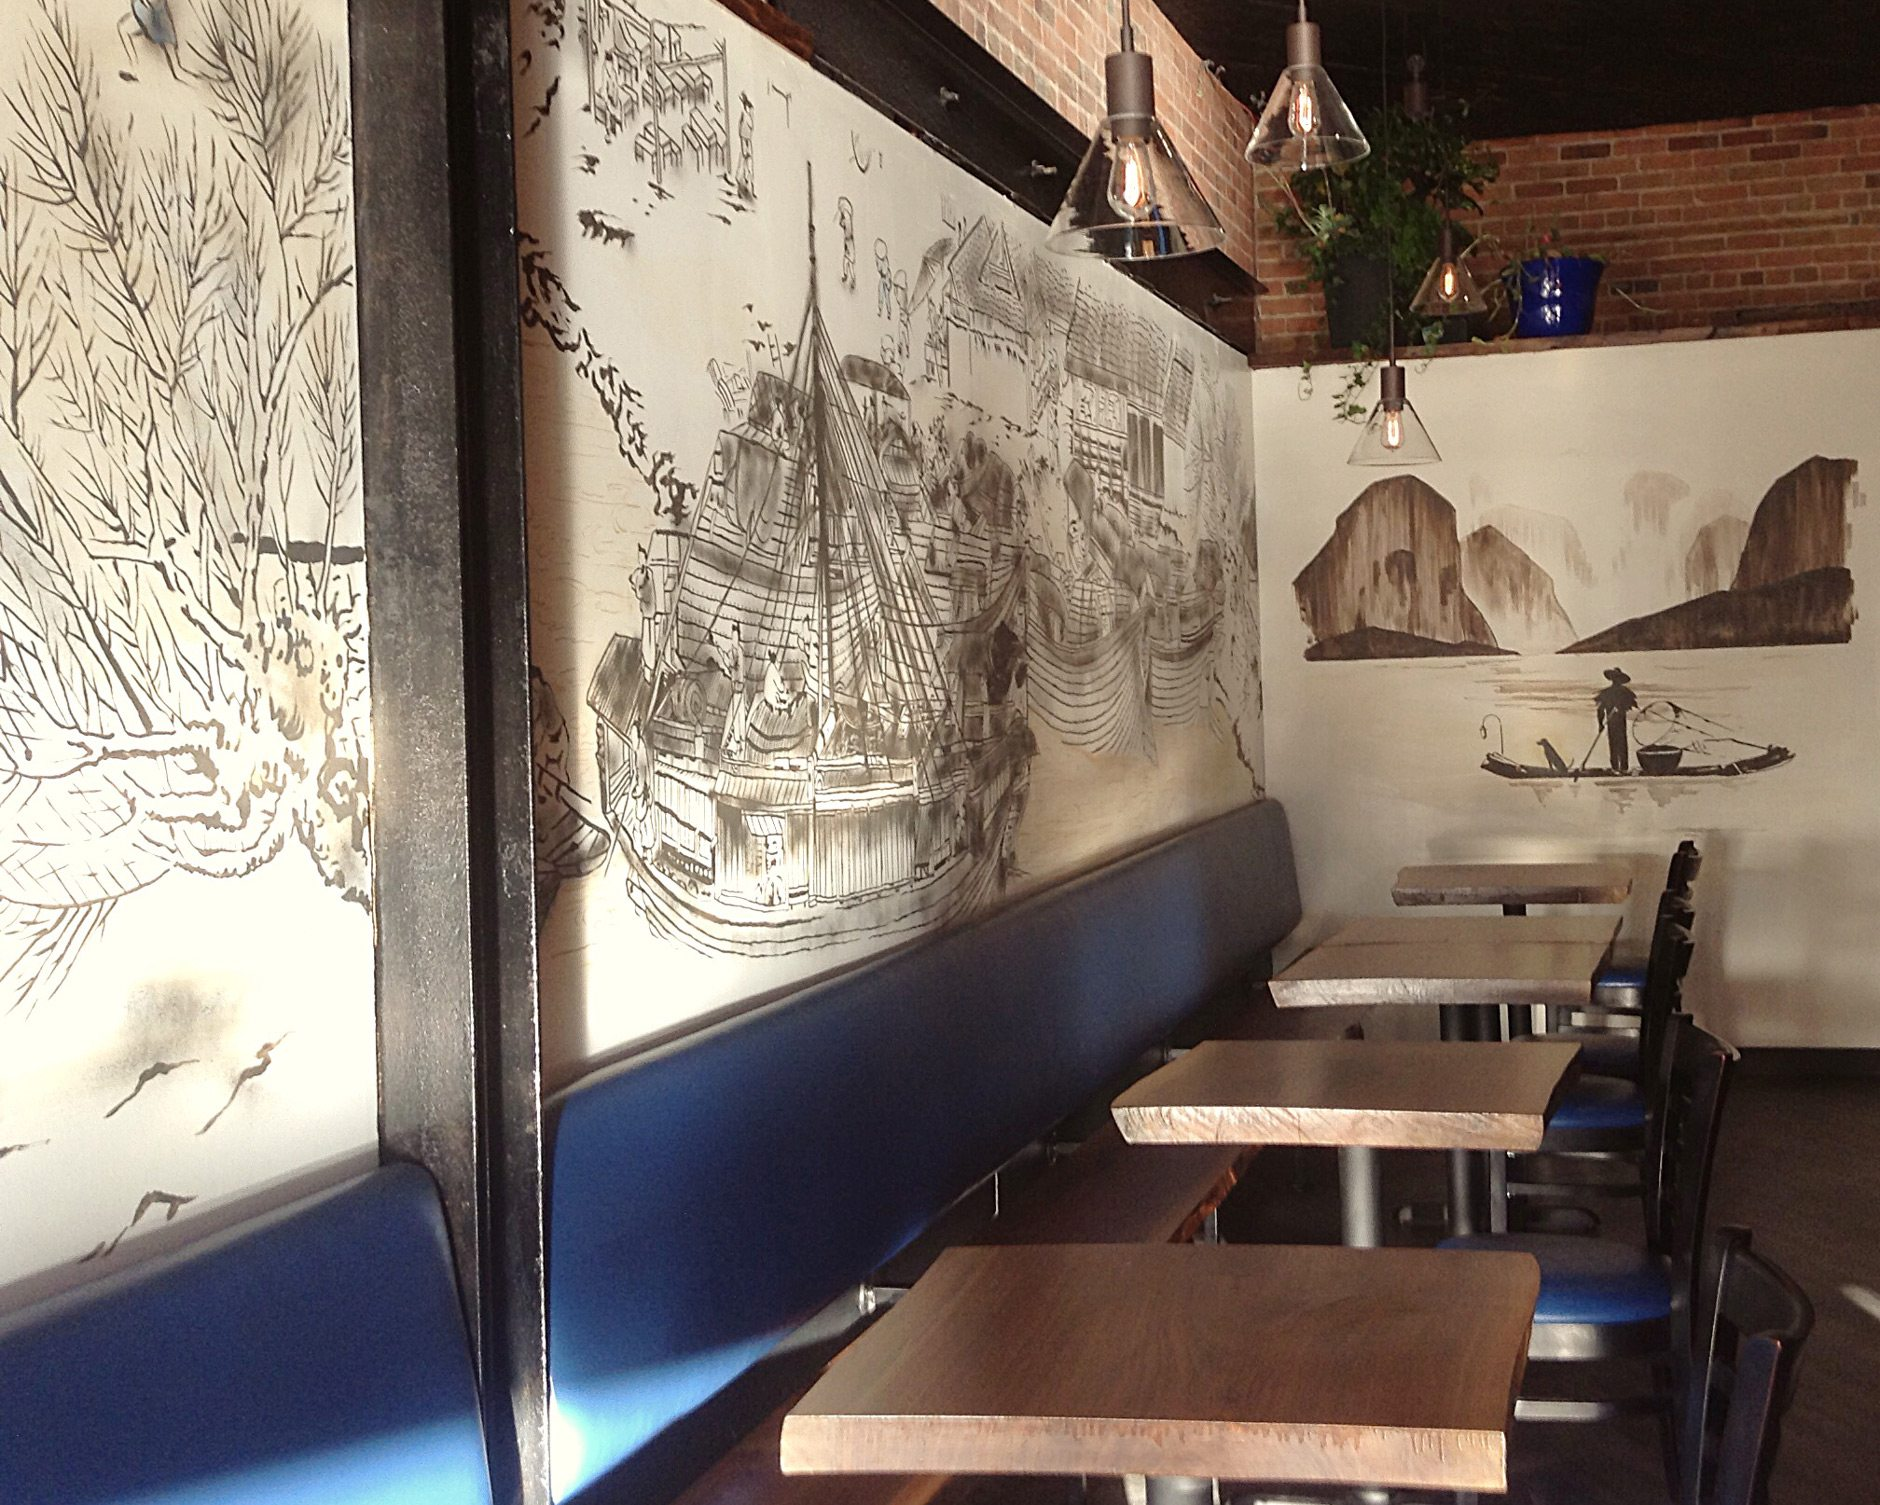 Local artist Dan Metcalfe painted the wall mural, based on a Chinese scroll Elliott and Caroline showed him